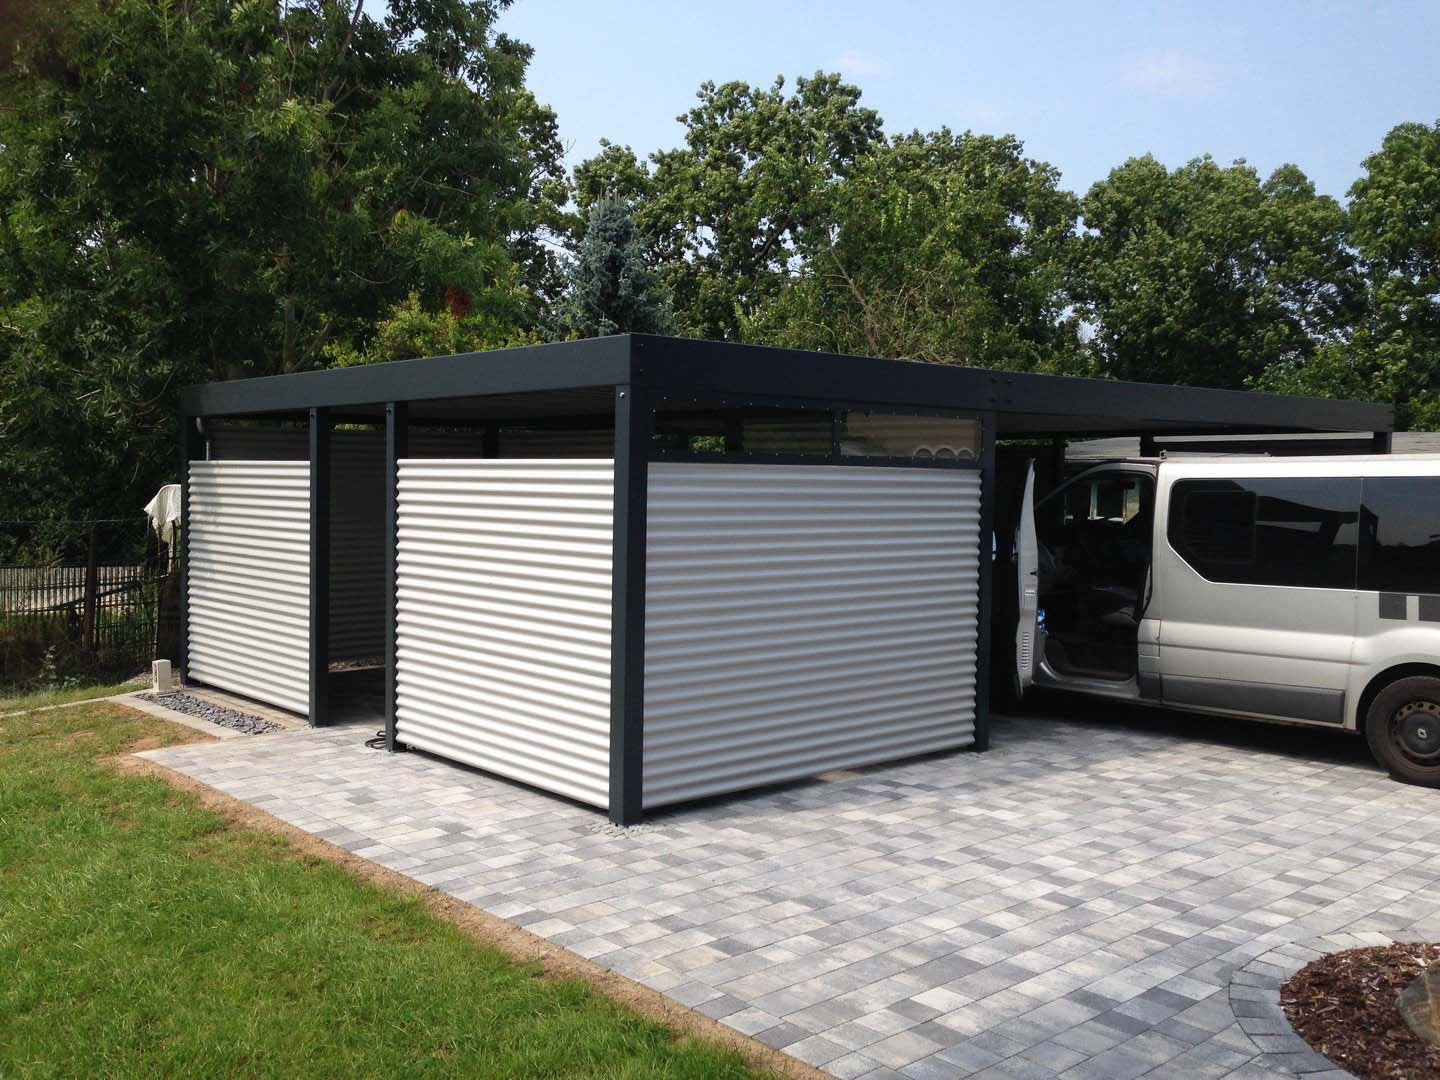 design metall carport aus stahl blech individuell salzburg ste metallcarport doppelcarport. Black Bedroom Furniture Sets. Home Design Ideas